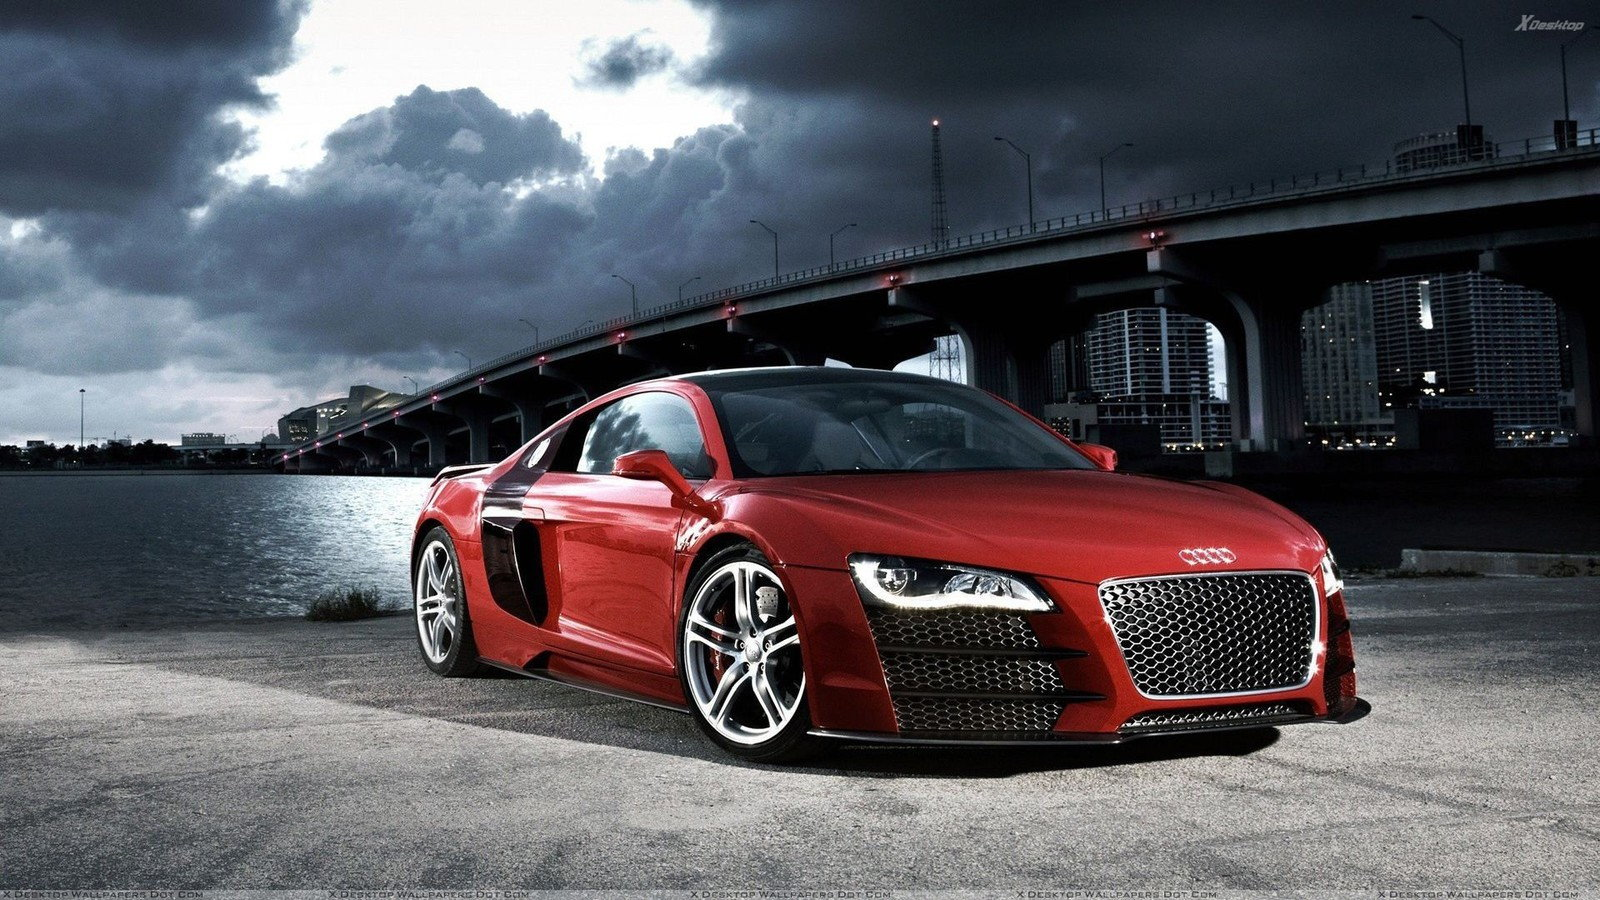 Some Reasons the R8 is One of the Best Supercars Ever